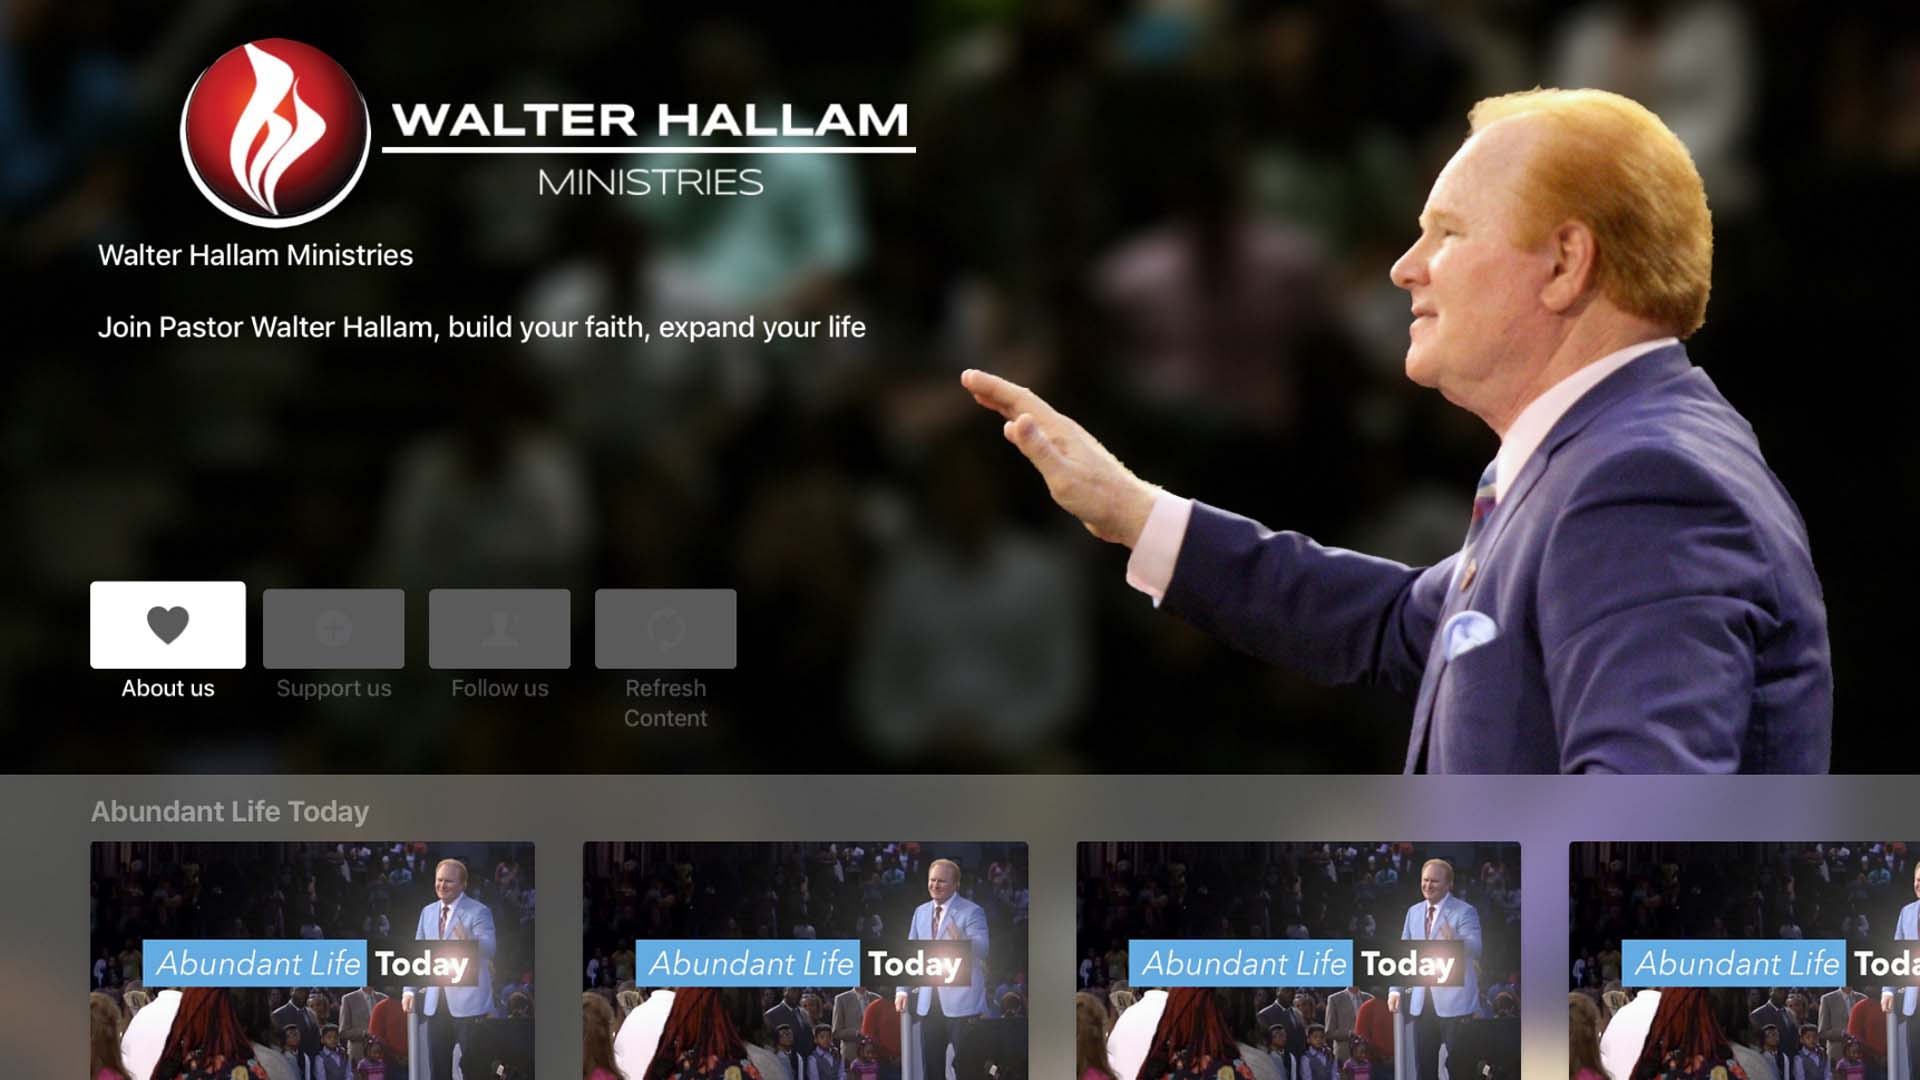 Walter Hallam Ministries Screenshot 001